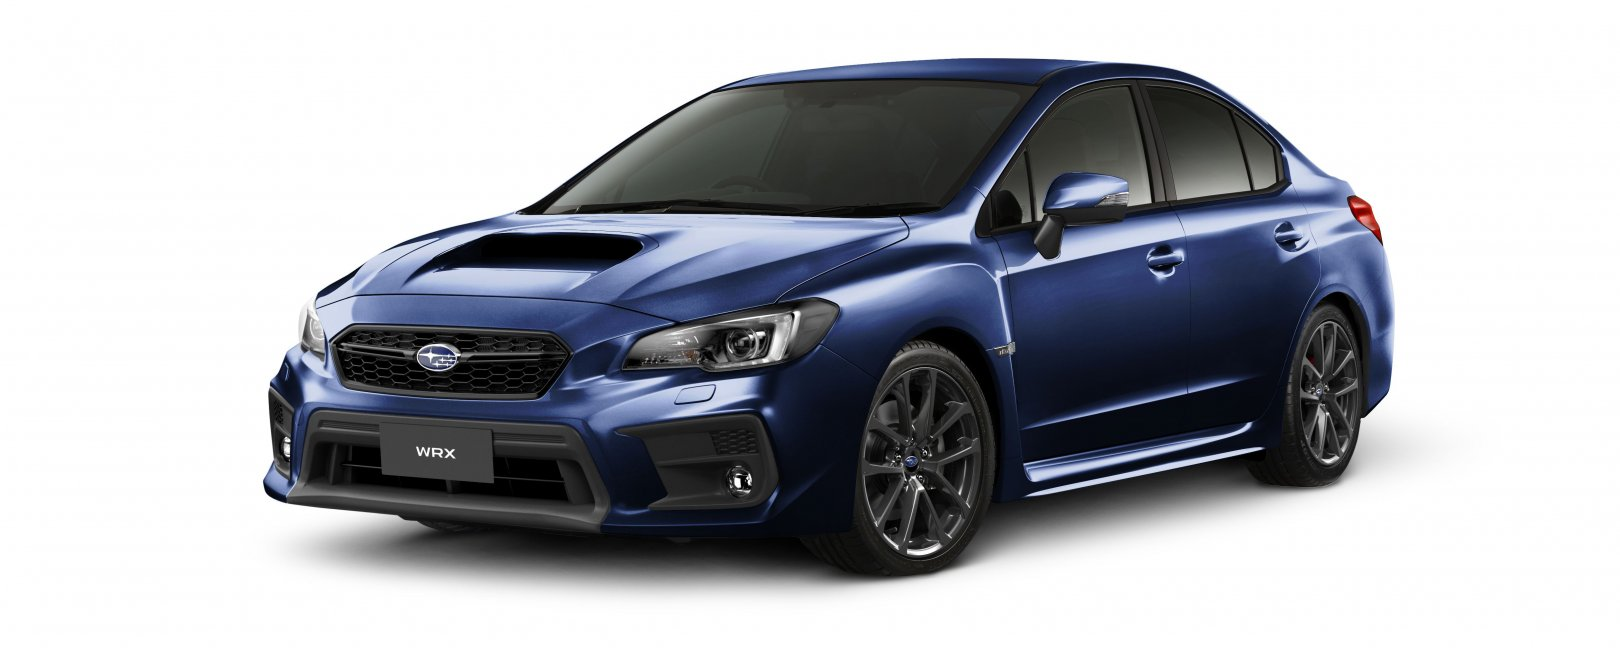 2020 WRX in lapis blue